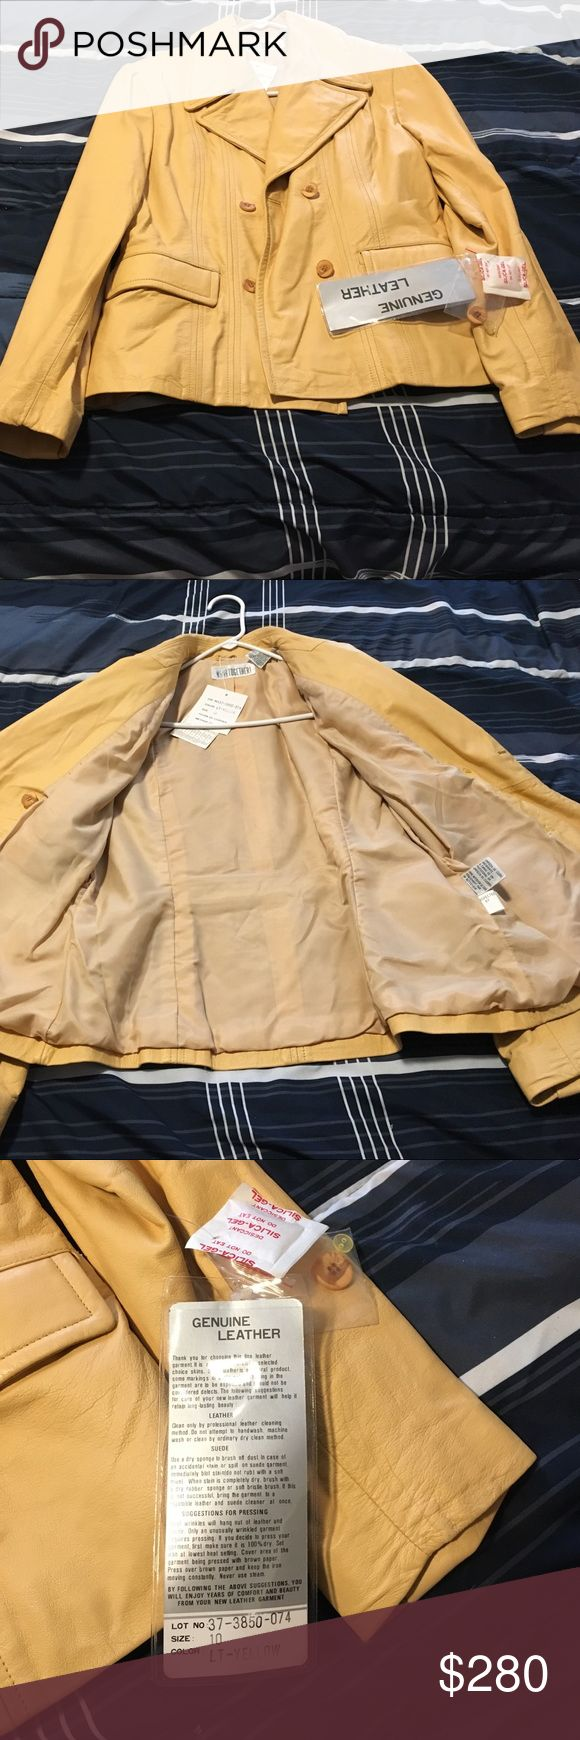 Tan leather jacket Genuine tan leather jacket. Never worn! Brand new. Beautiful. With tags! Jackets & Coats